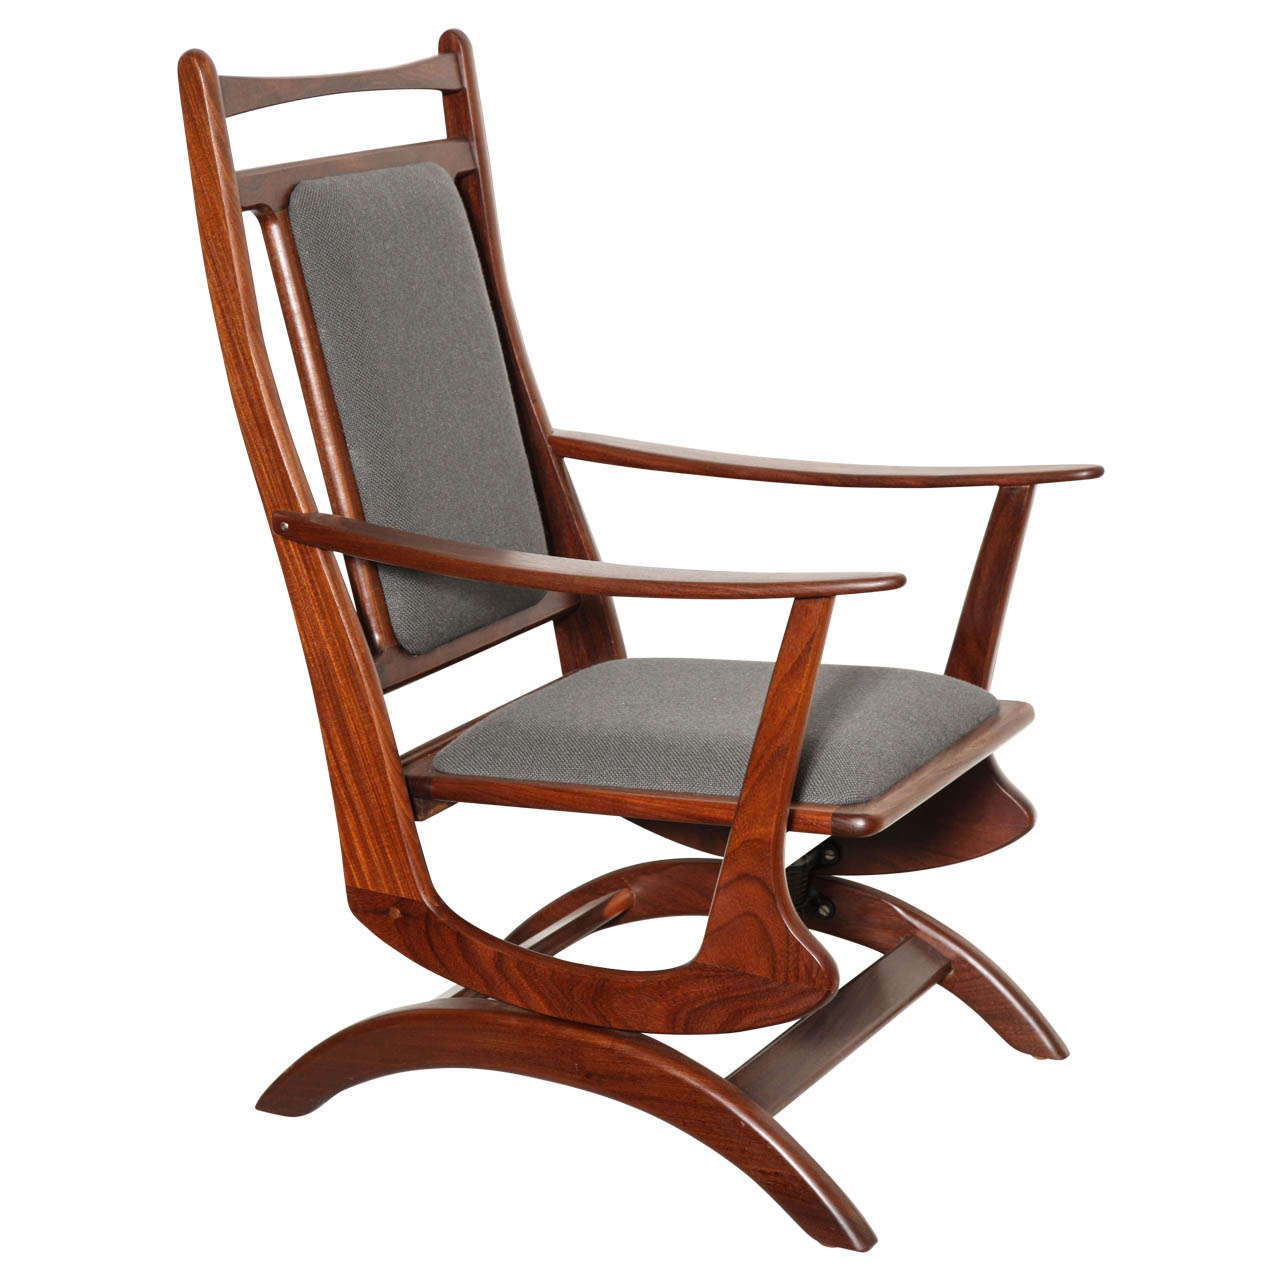 Old Spring Rocking Chair submited images